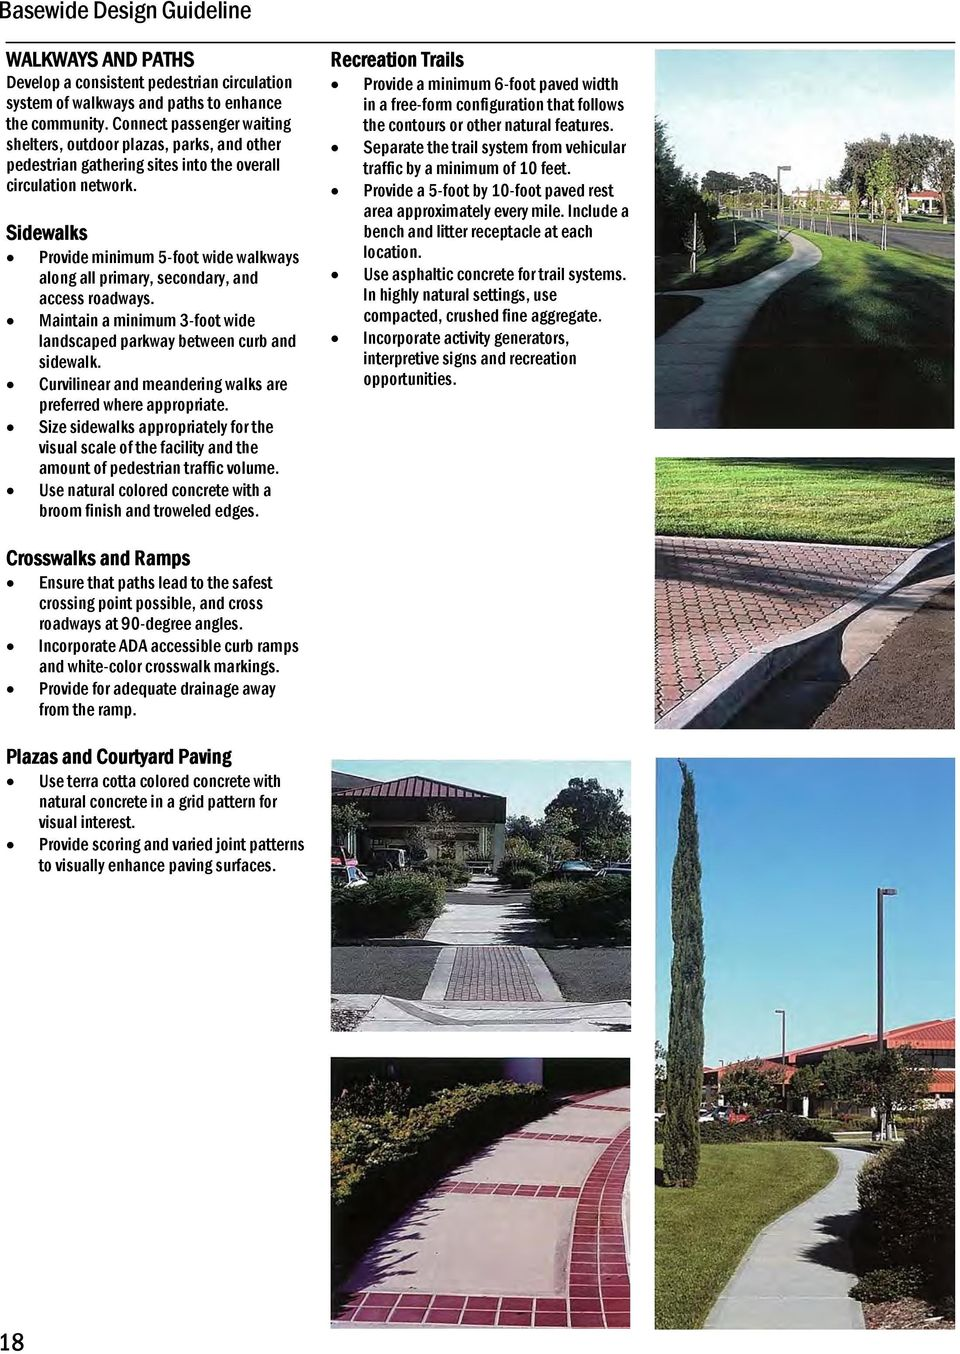 Sidewalks Provide minimum 5-foot wide walkways along all primary, secondary, and access roadways. Maintain a minimum 3-foot wide landscaped parkway between curb and sidewalk.